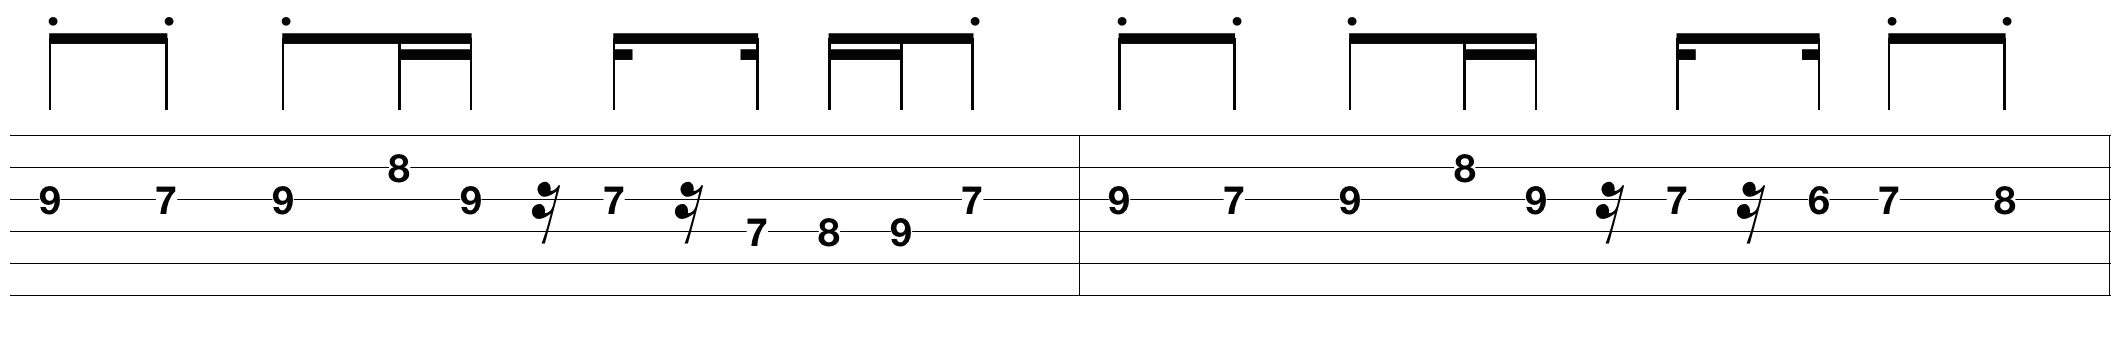 funk-guitar-licks_2.png